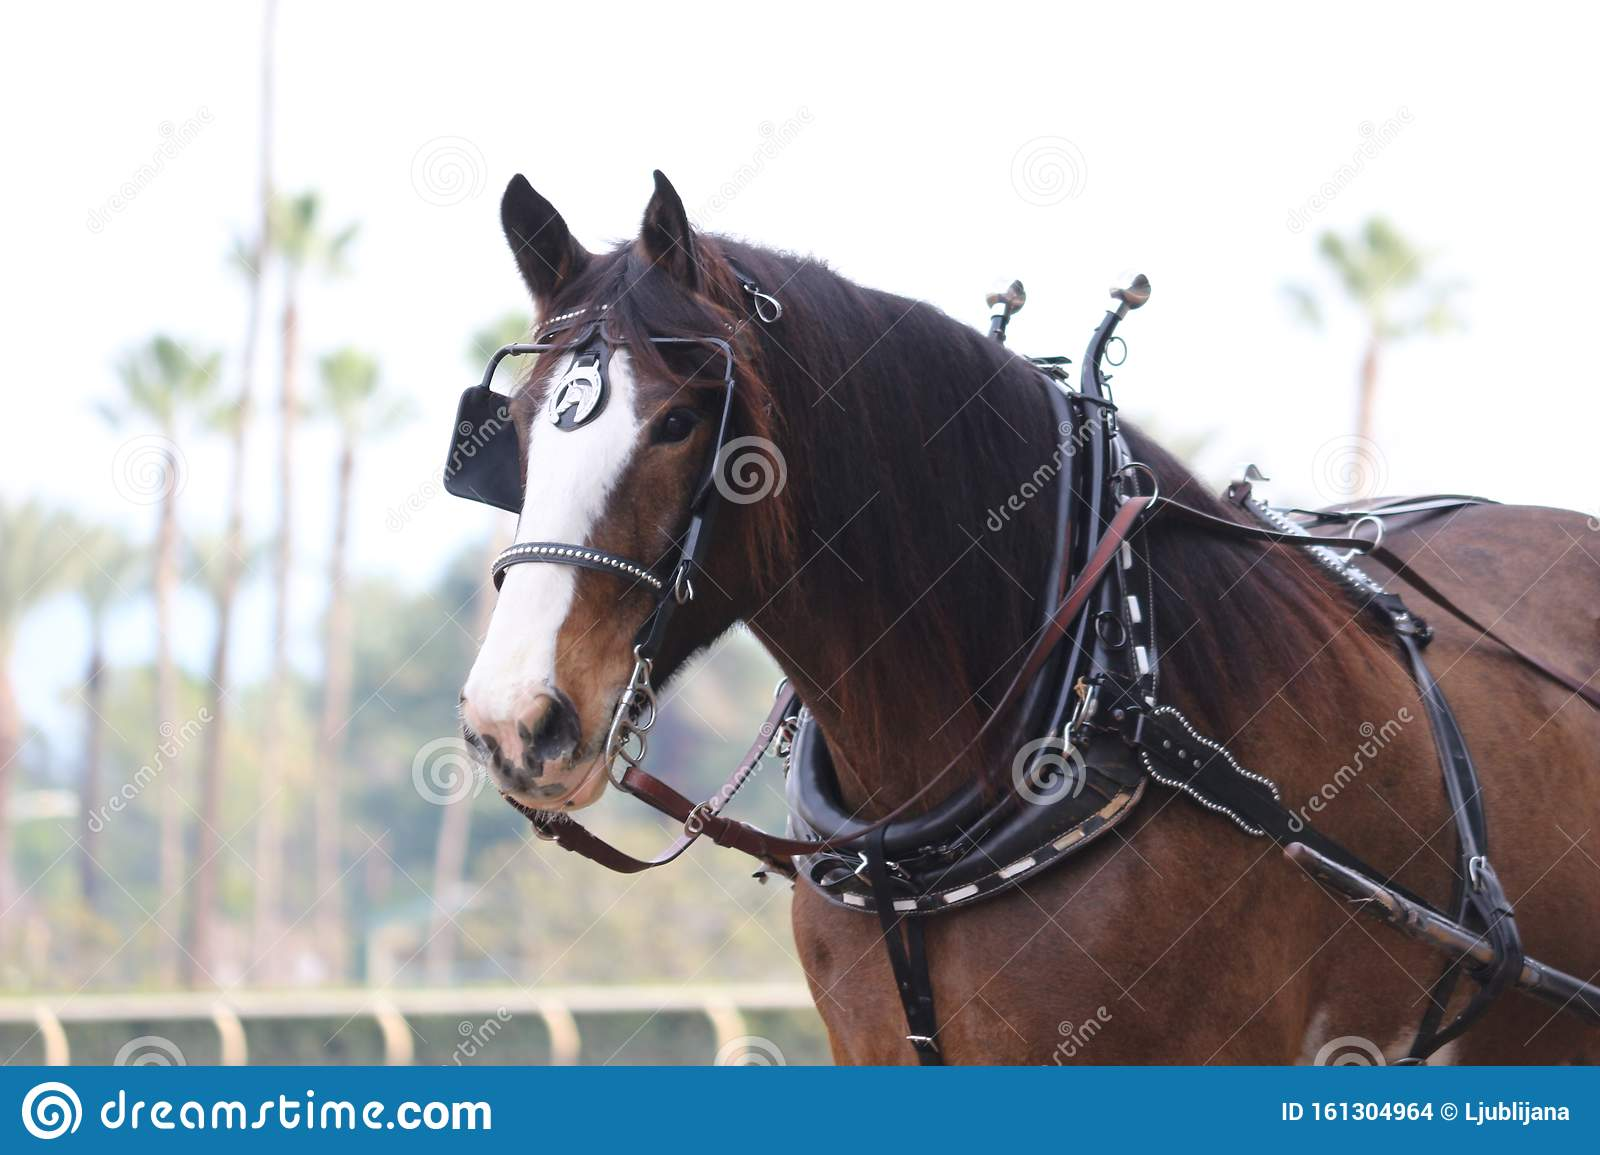 222 Beautiful Clydesdale Photos Free Royalty Free Stock Photos From Dreamstime